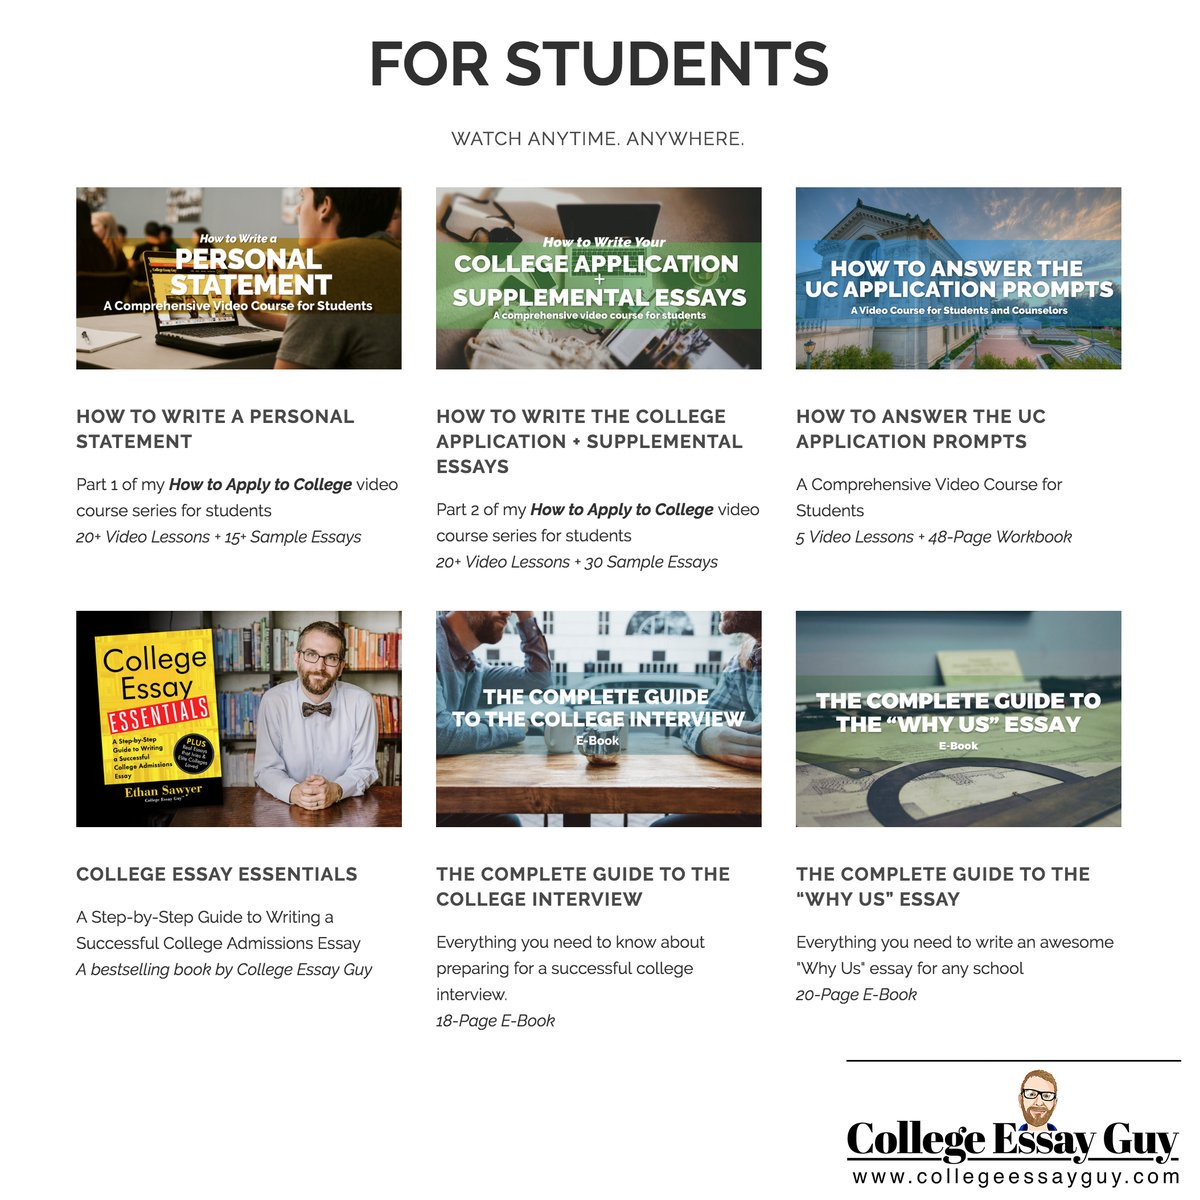 High school seniors, I have every resource available to help you do an amazing job on your college applications—and even enjoy the process: goo.gl/YG7fUZ